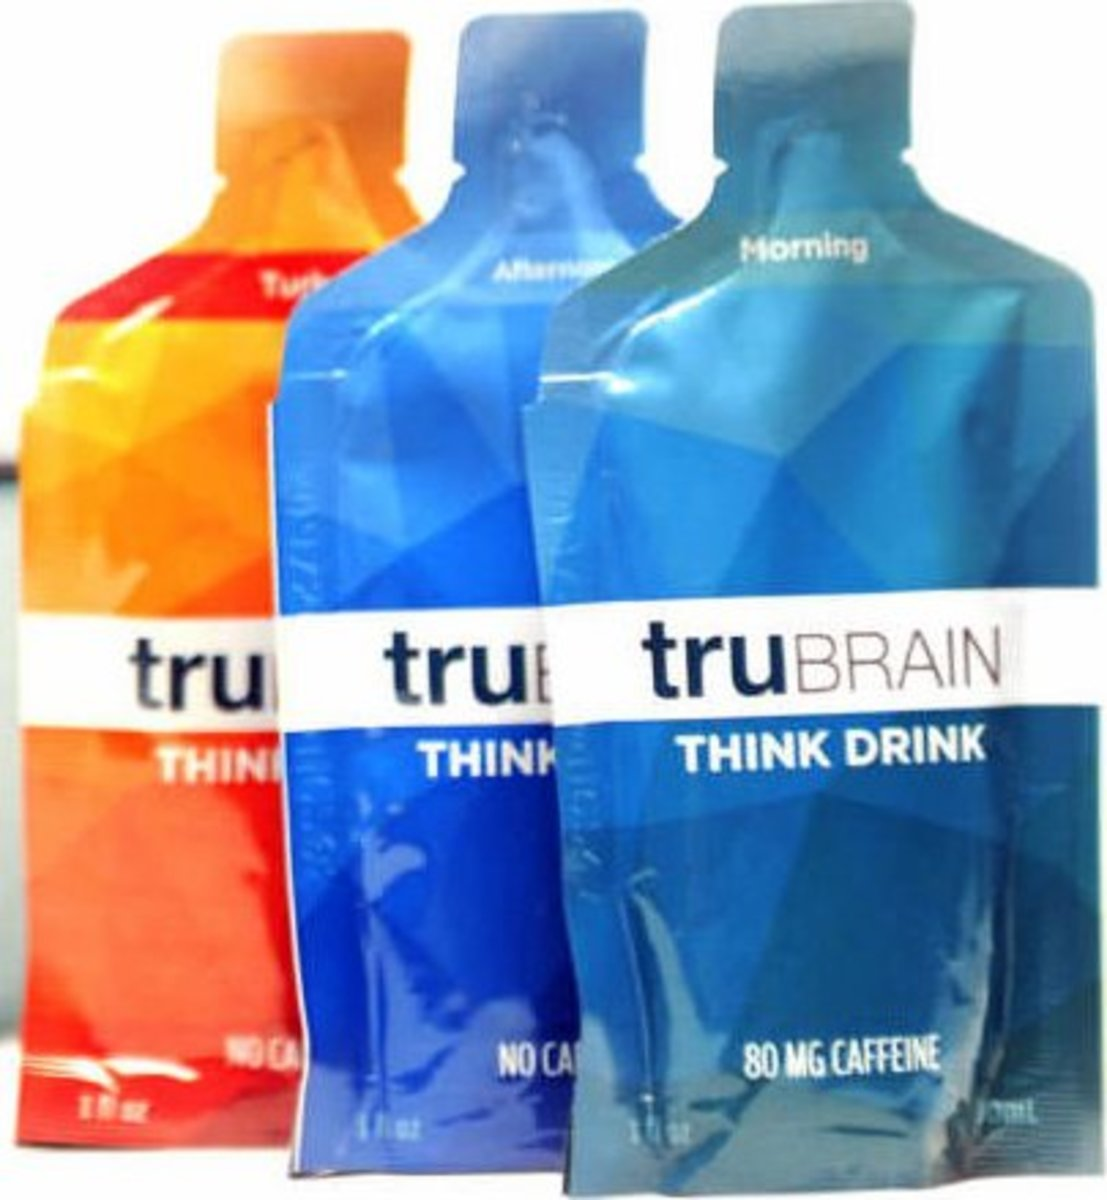 truBRAIN claimed to be the reinvented energy drinks that can boost the brain power